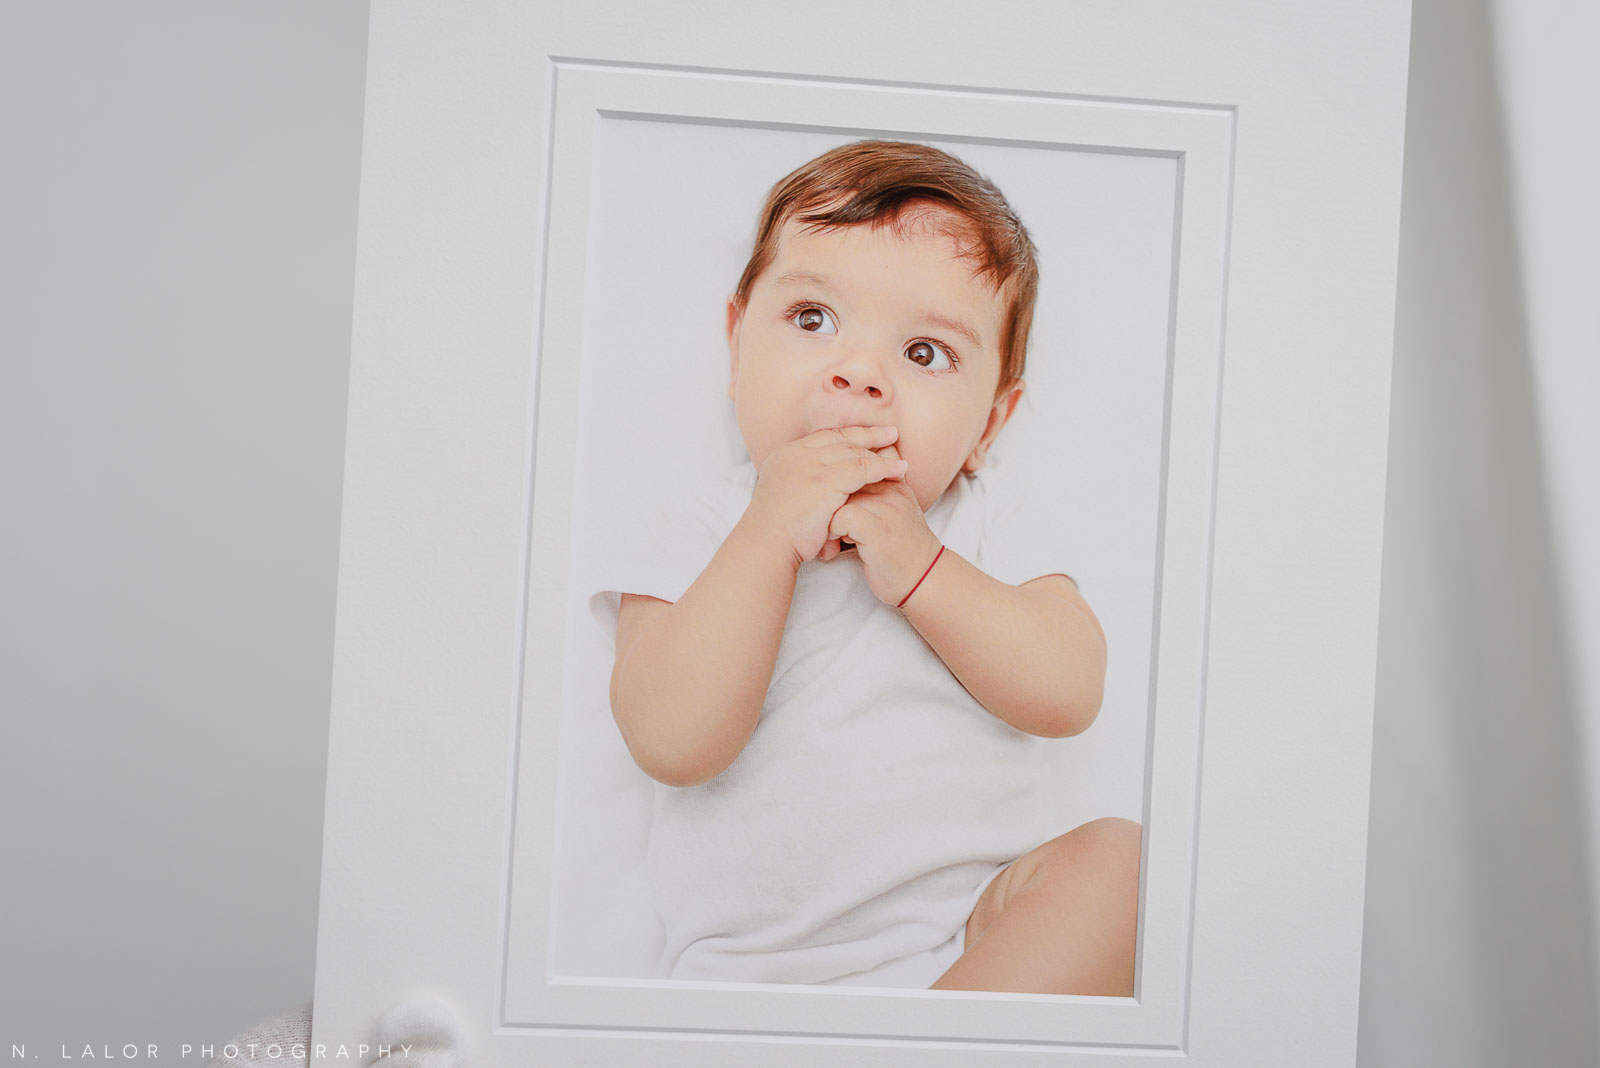 Matted fine art print. Studio baby photo session with N. Lalor Photography. Greenwich, Connecticut.